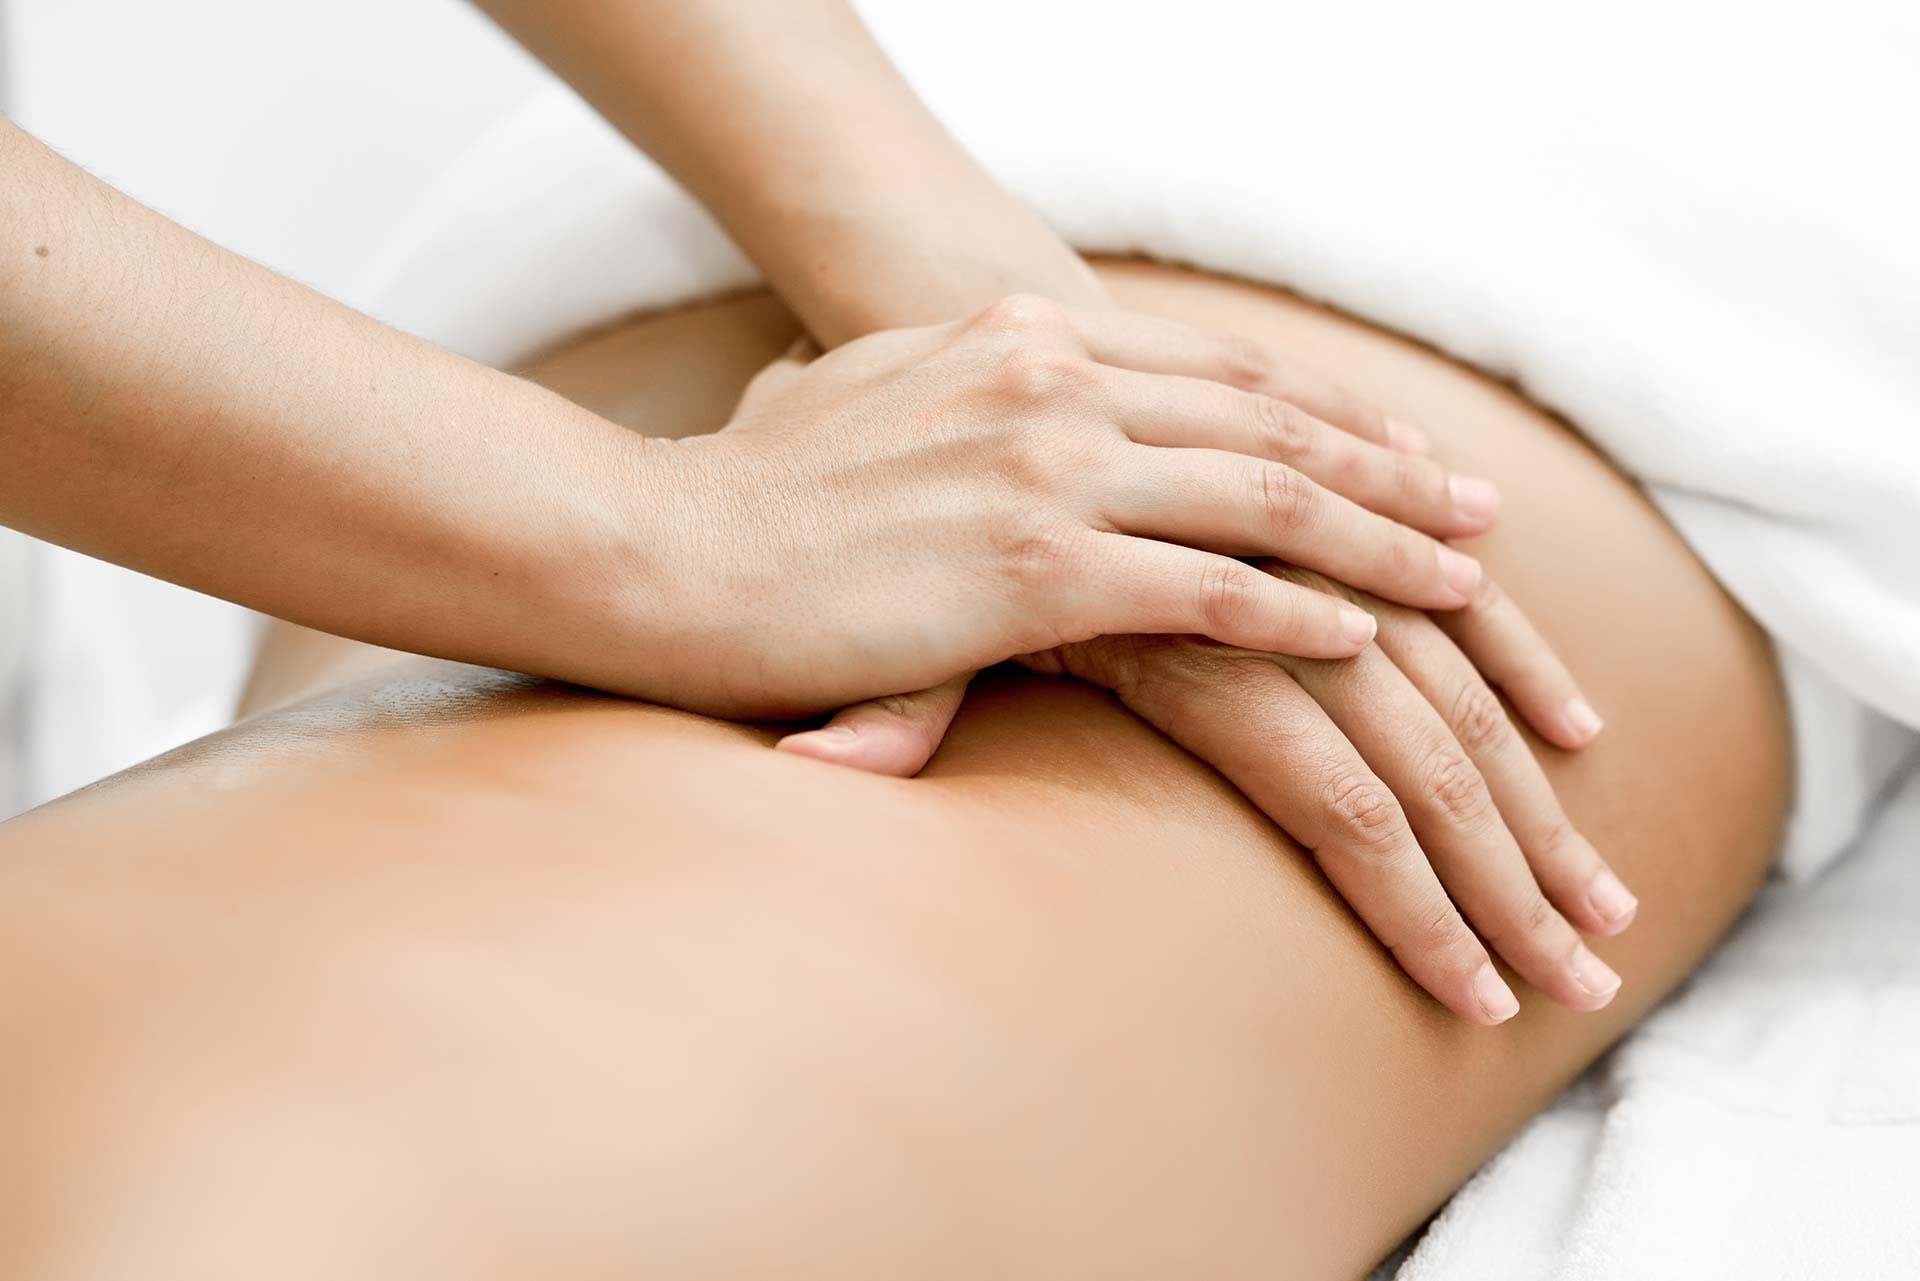 Top mistakes massage therapists make